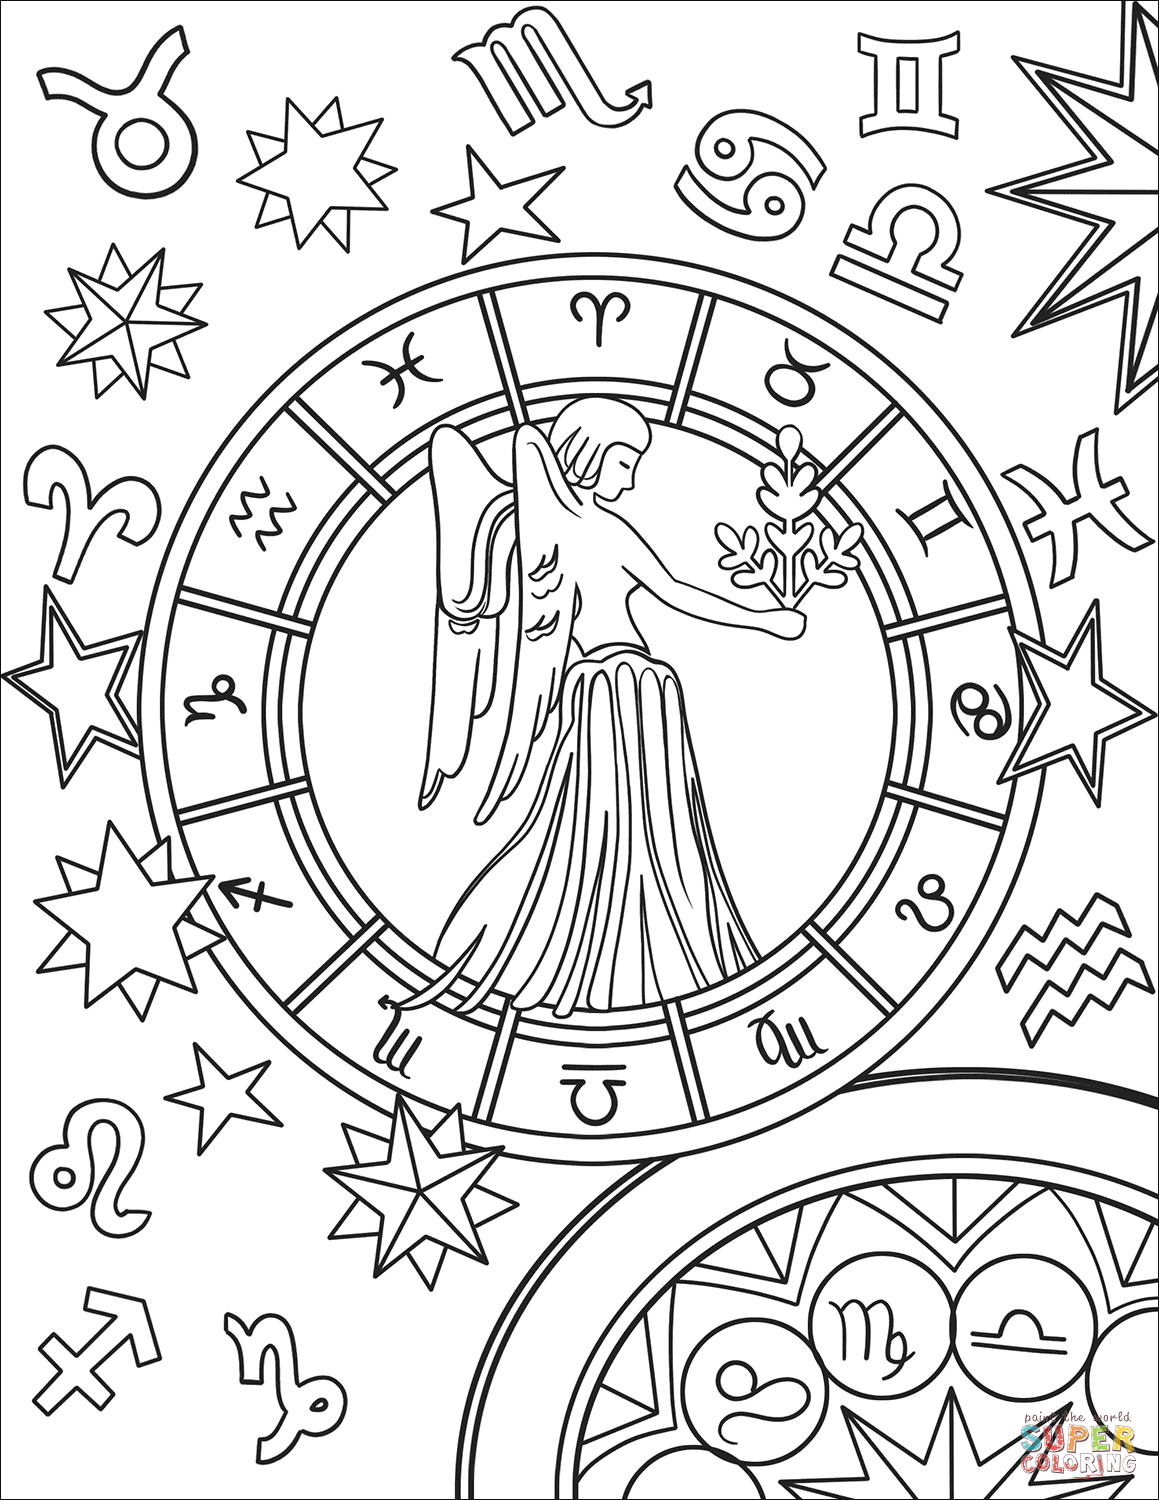 Virgo Zodiac Sign Coloring Page Free Printable Coloring Pages Star Coloring Pages Zodiac Signs Colors Coloring Pages